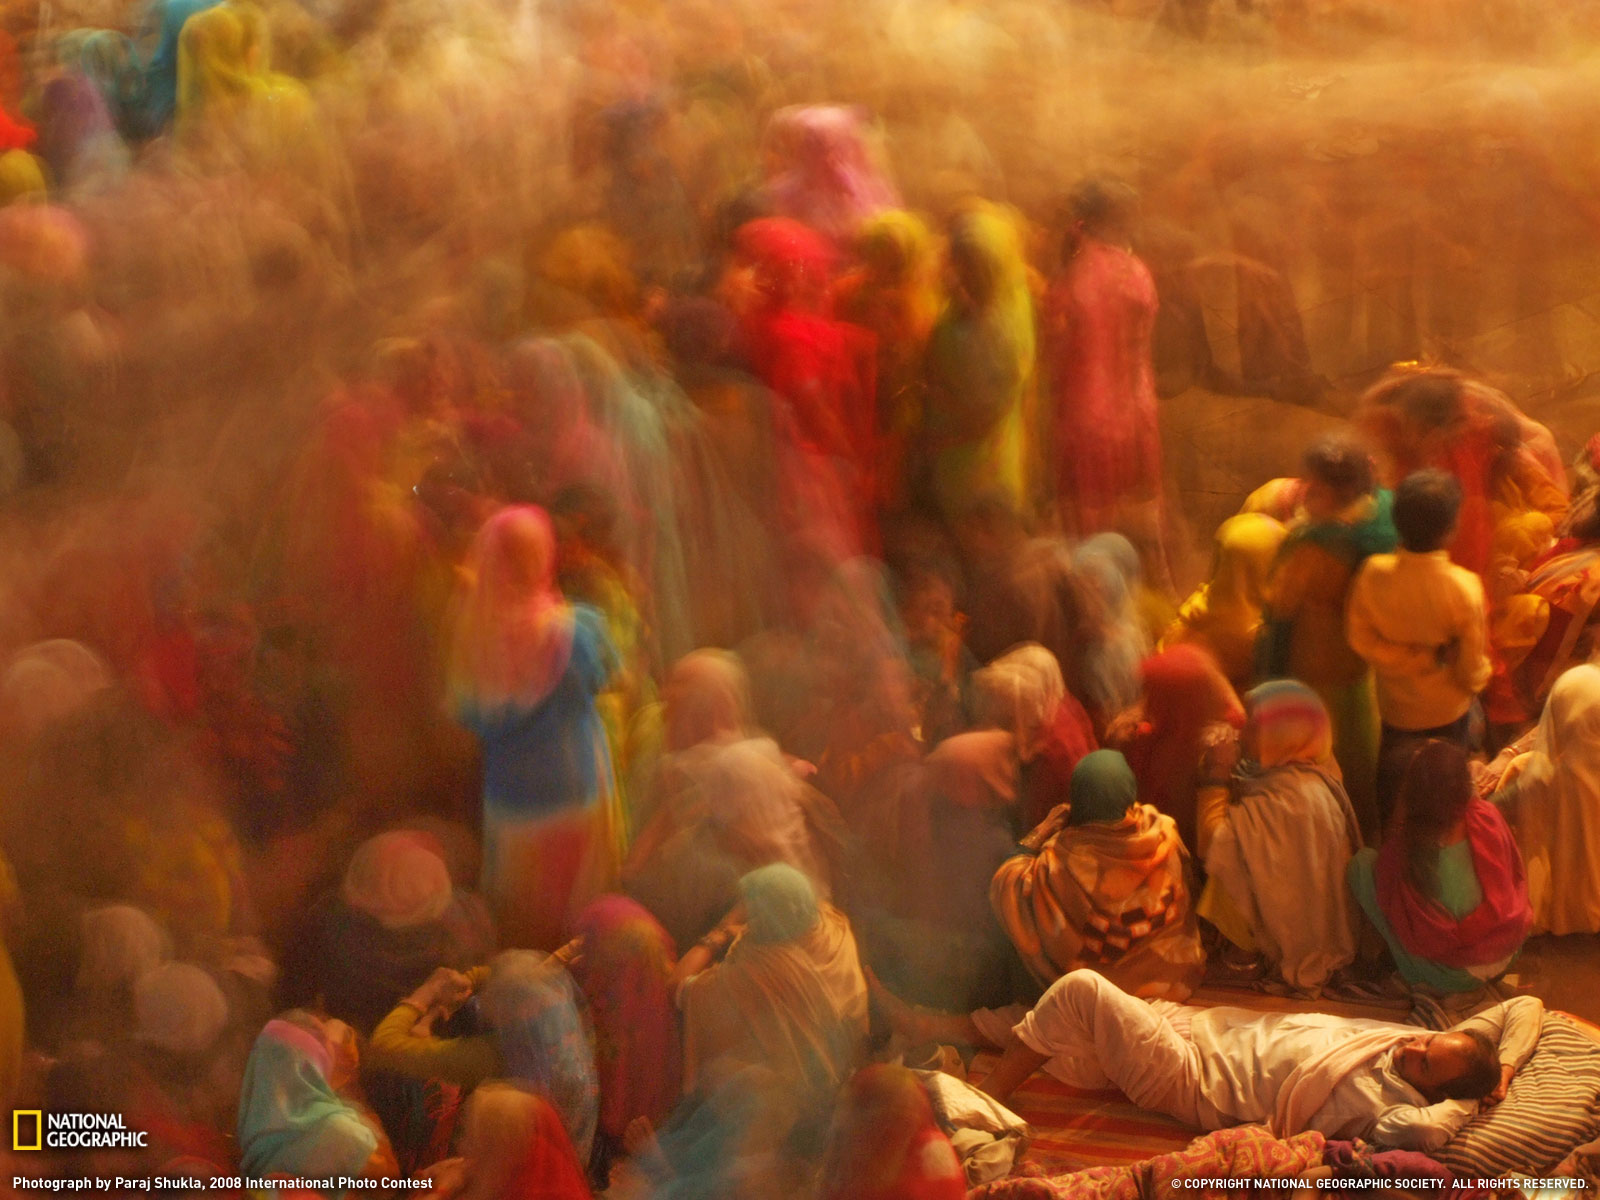 Commotion Picture India Wallpaper   National Geographic Photo of the 1600x1200